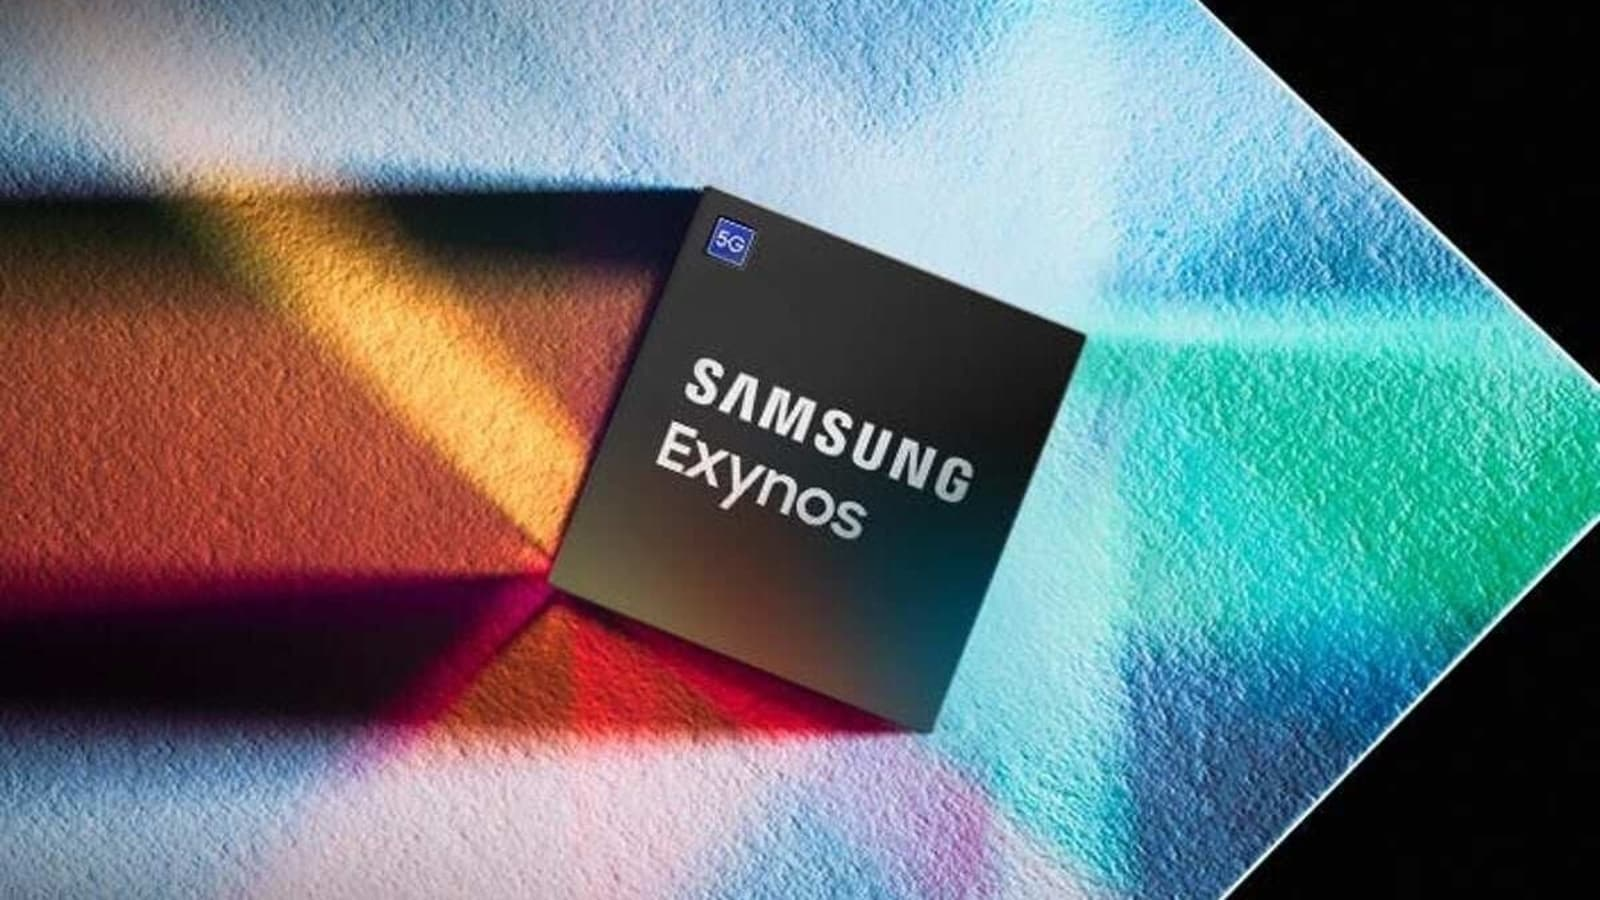 Samsung and AMD are bringing console-like graphics to the upcoming Exynos processor